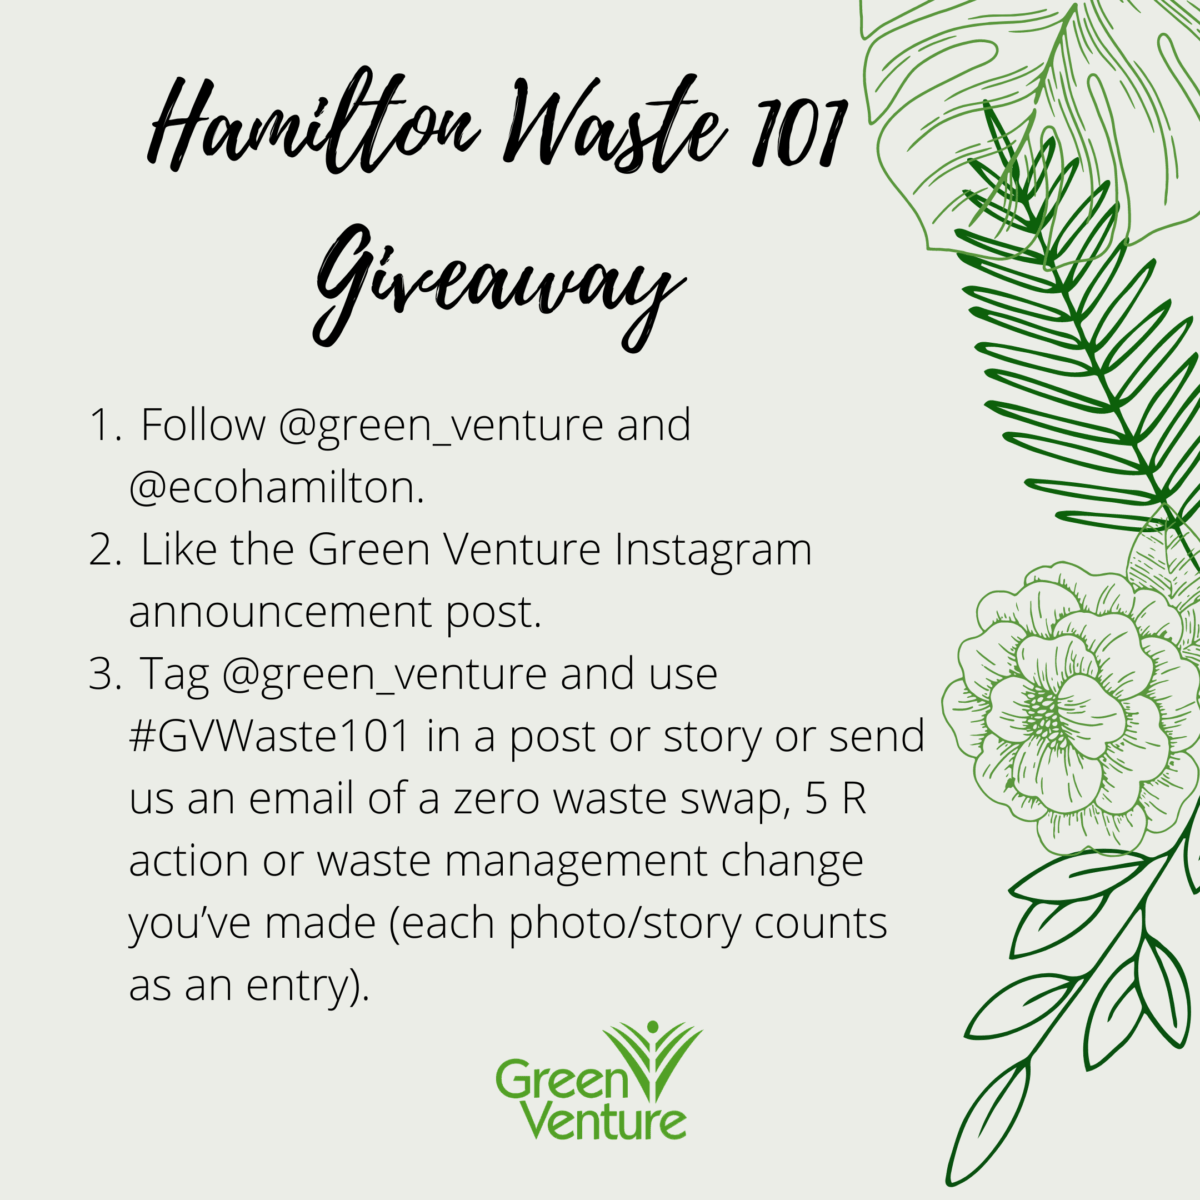 Take part in Green Venture's Waste 101 contest